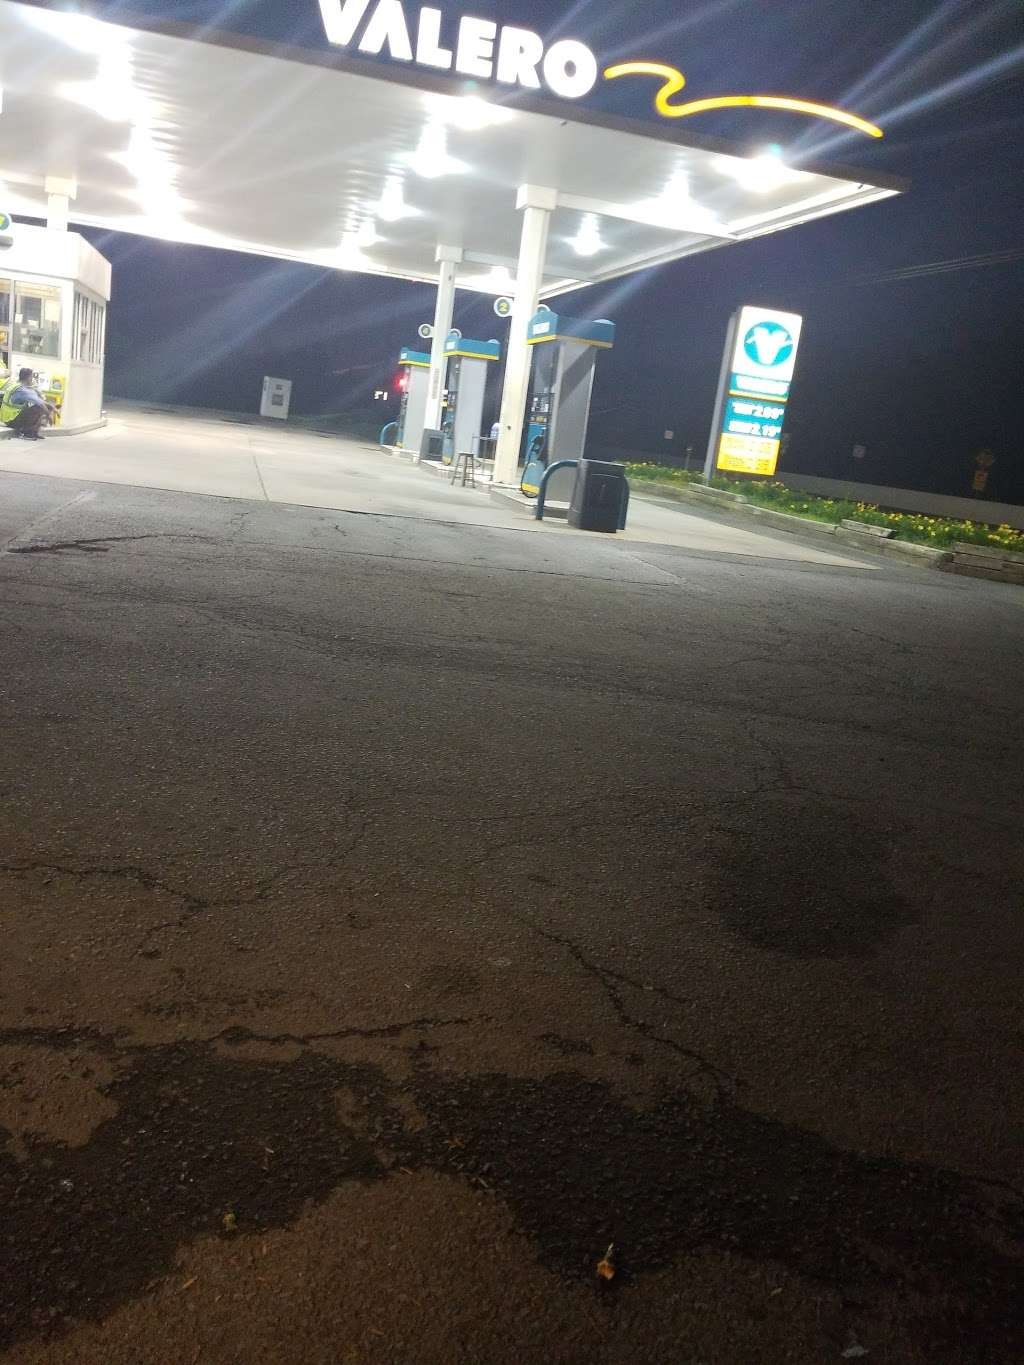 Valero - gas station  | Photo 3 of 3 | Address: 3817 Deans Ln, Monmouth Junction, NJ 08852, USA | Phone: (732) 297-9540